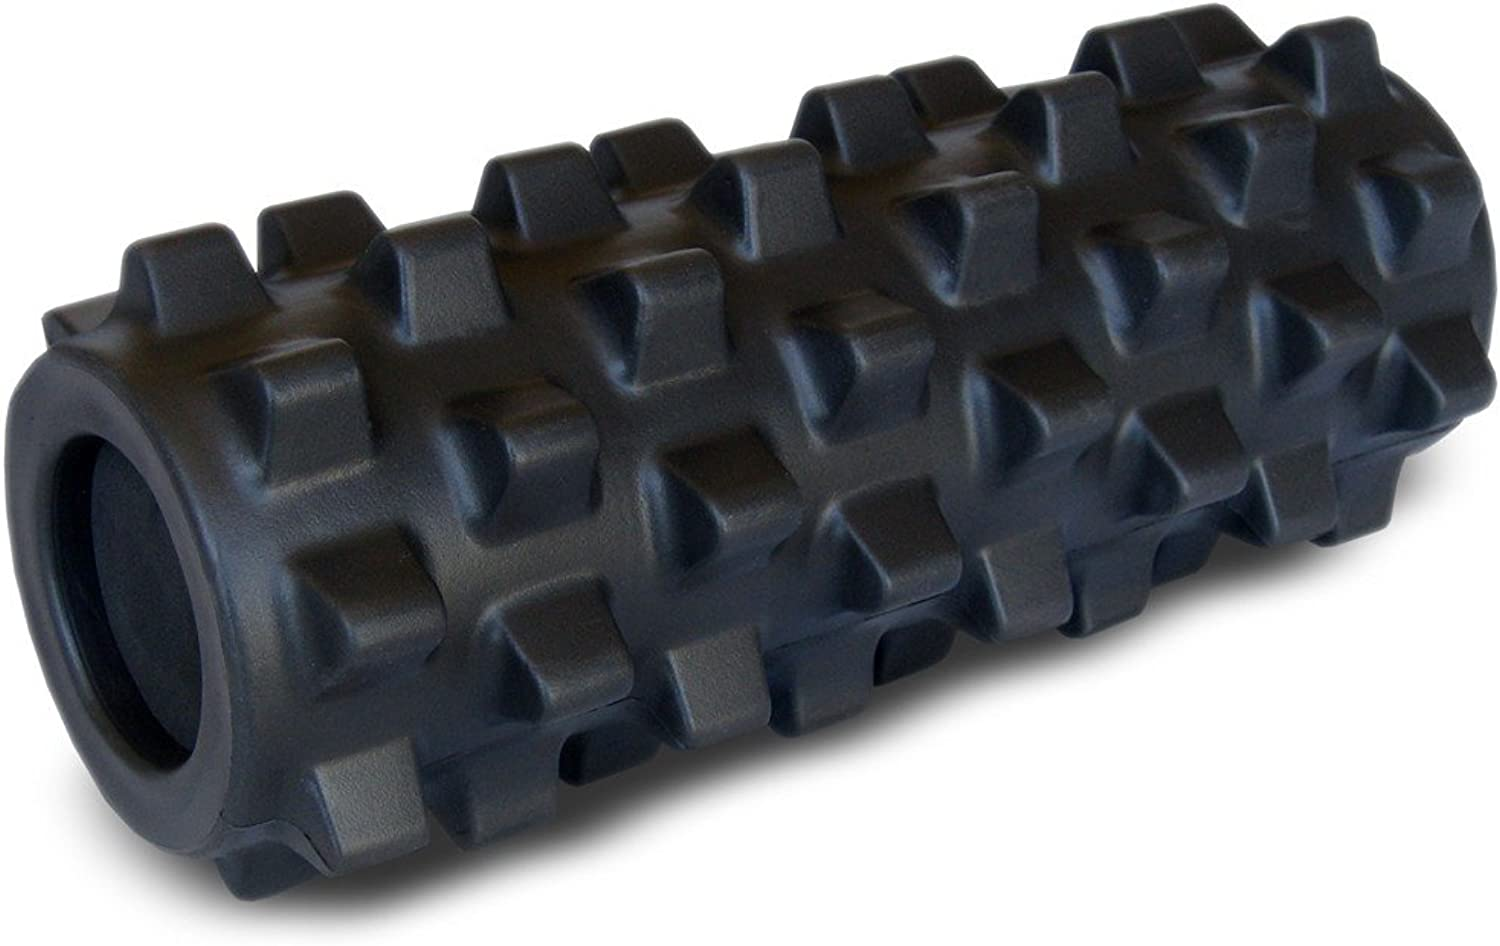 Rumble Roller  Textured Muscle Foam Roller Manipulates Soft Tissue Like A Massage Therapist